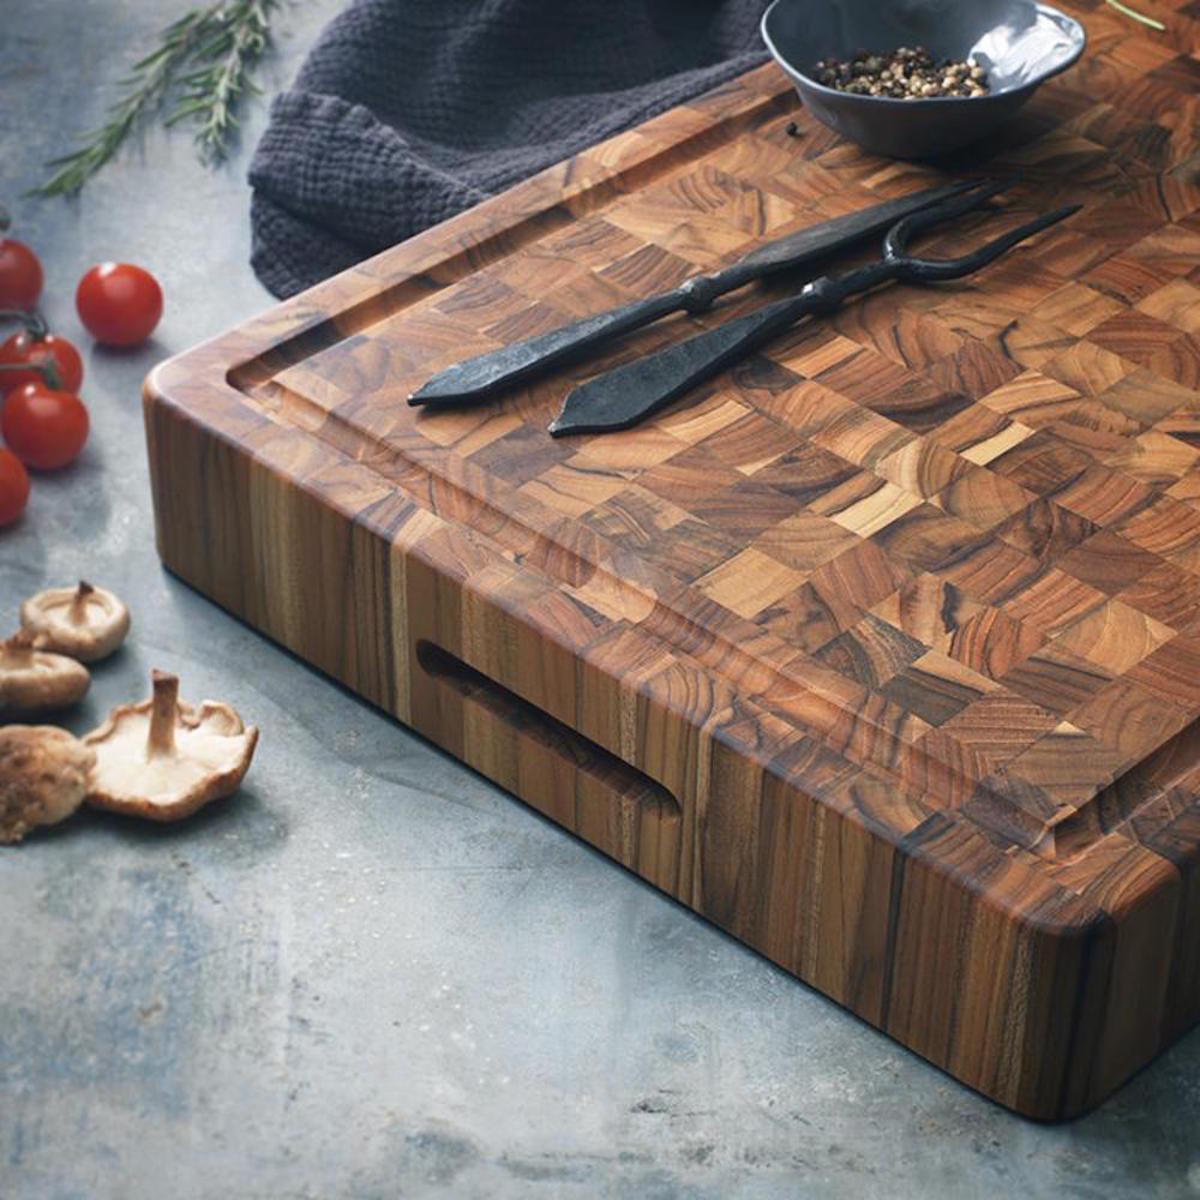 Fullsize Of Bamboo Cutting Board Care